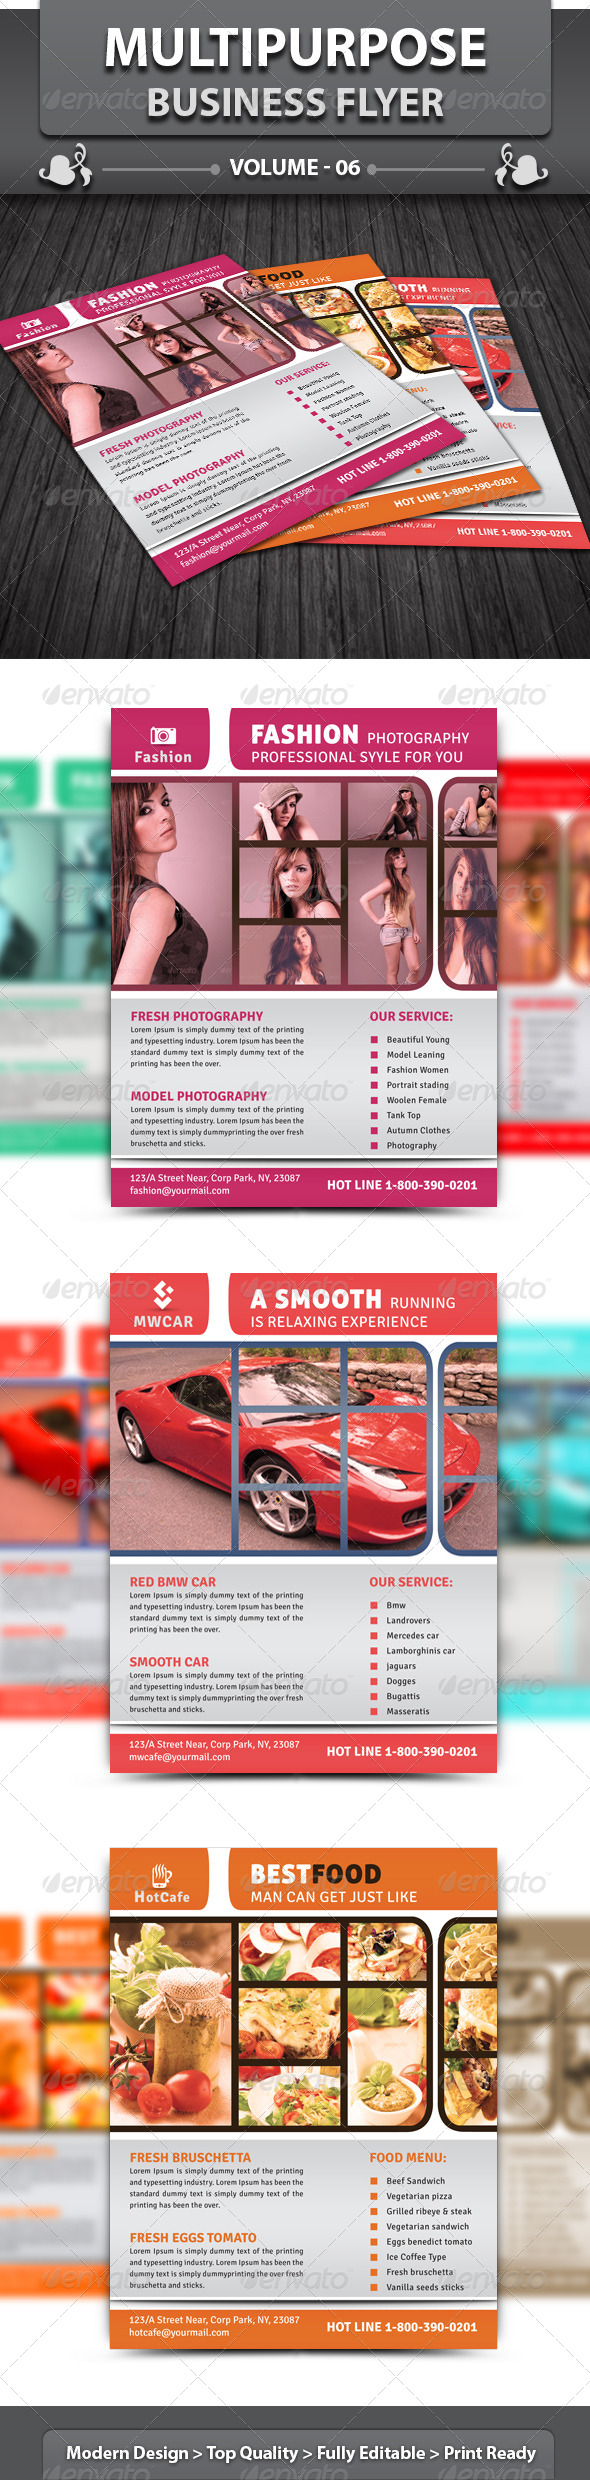 Multipurpose Business Flyer | Volume 6 - Corporate Flyers